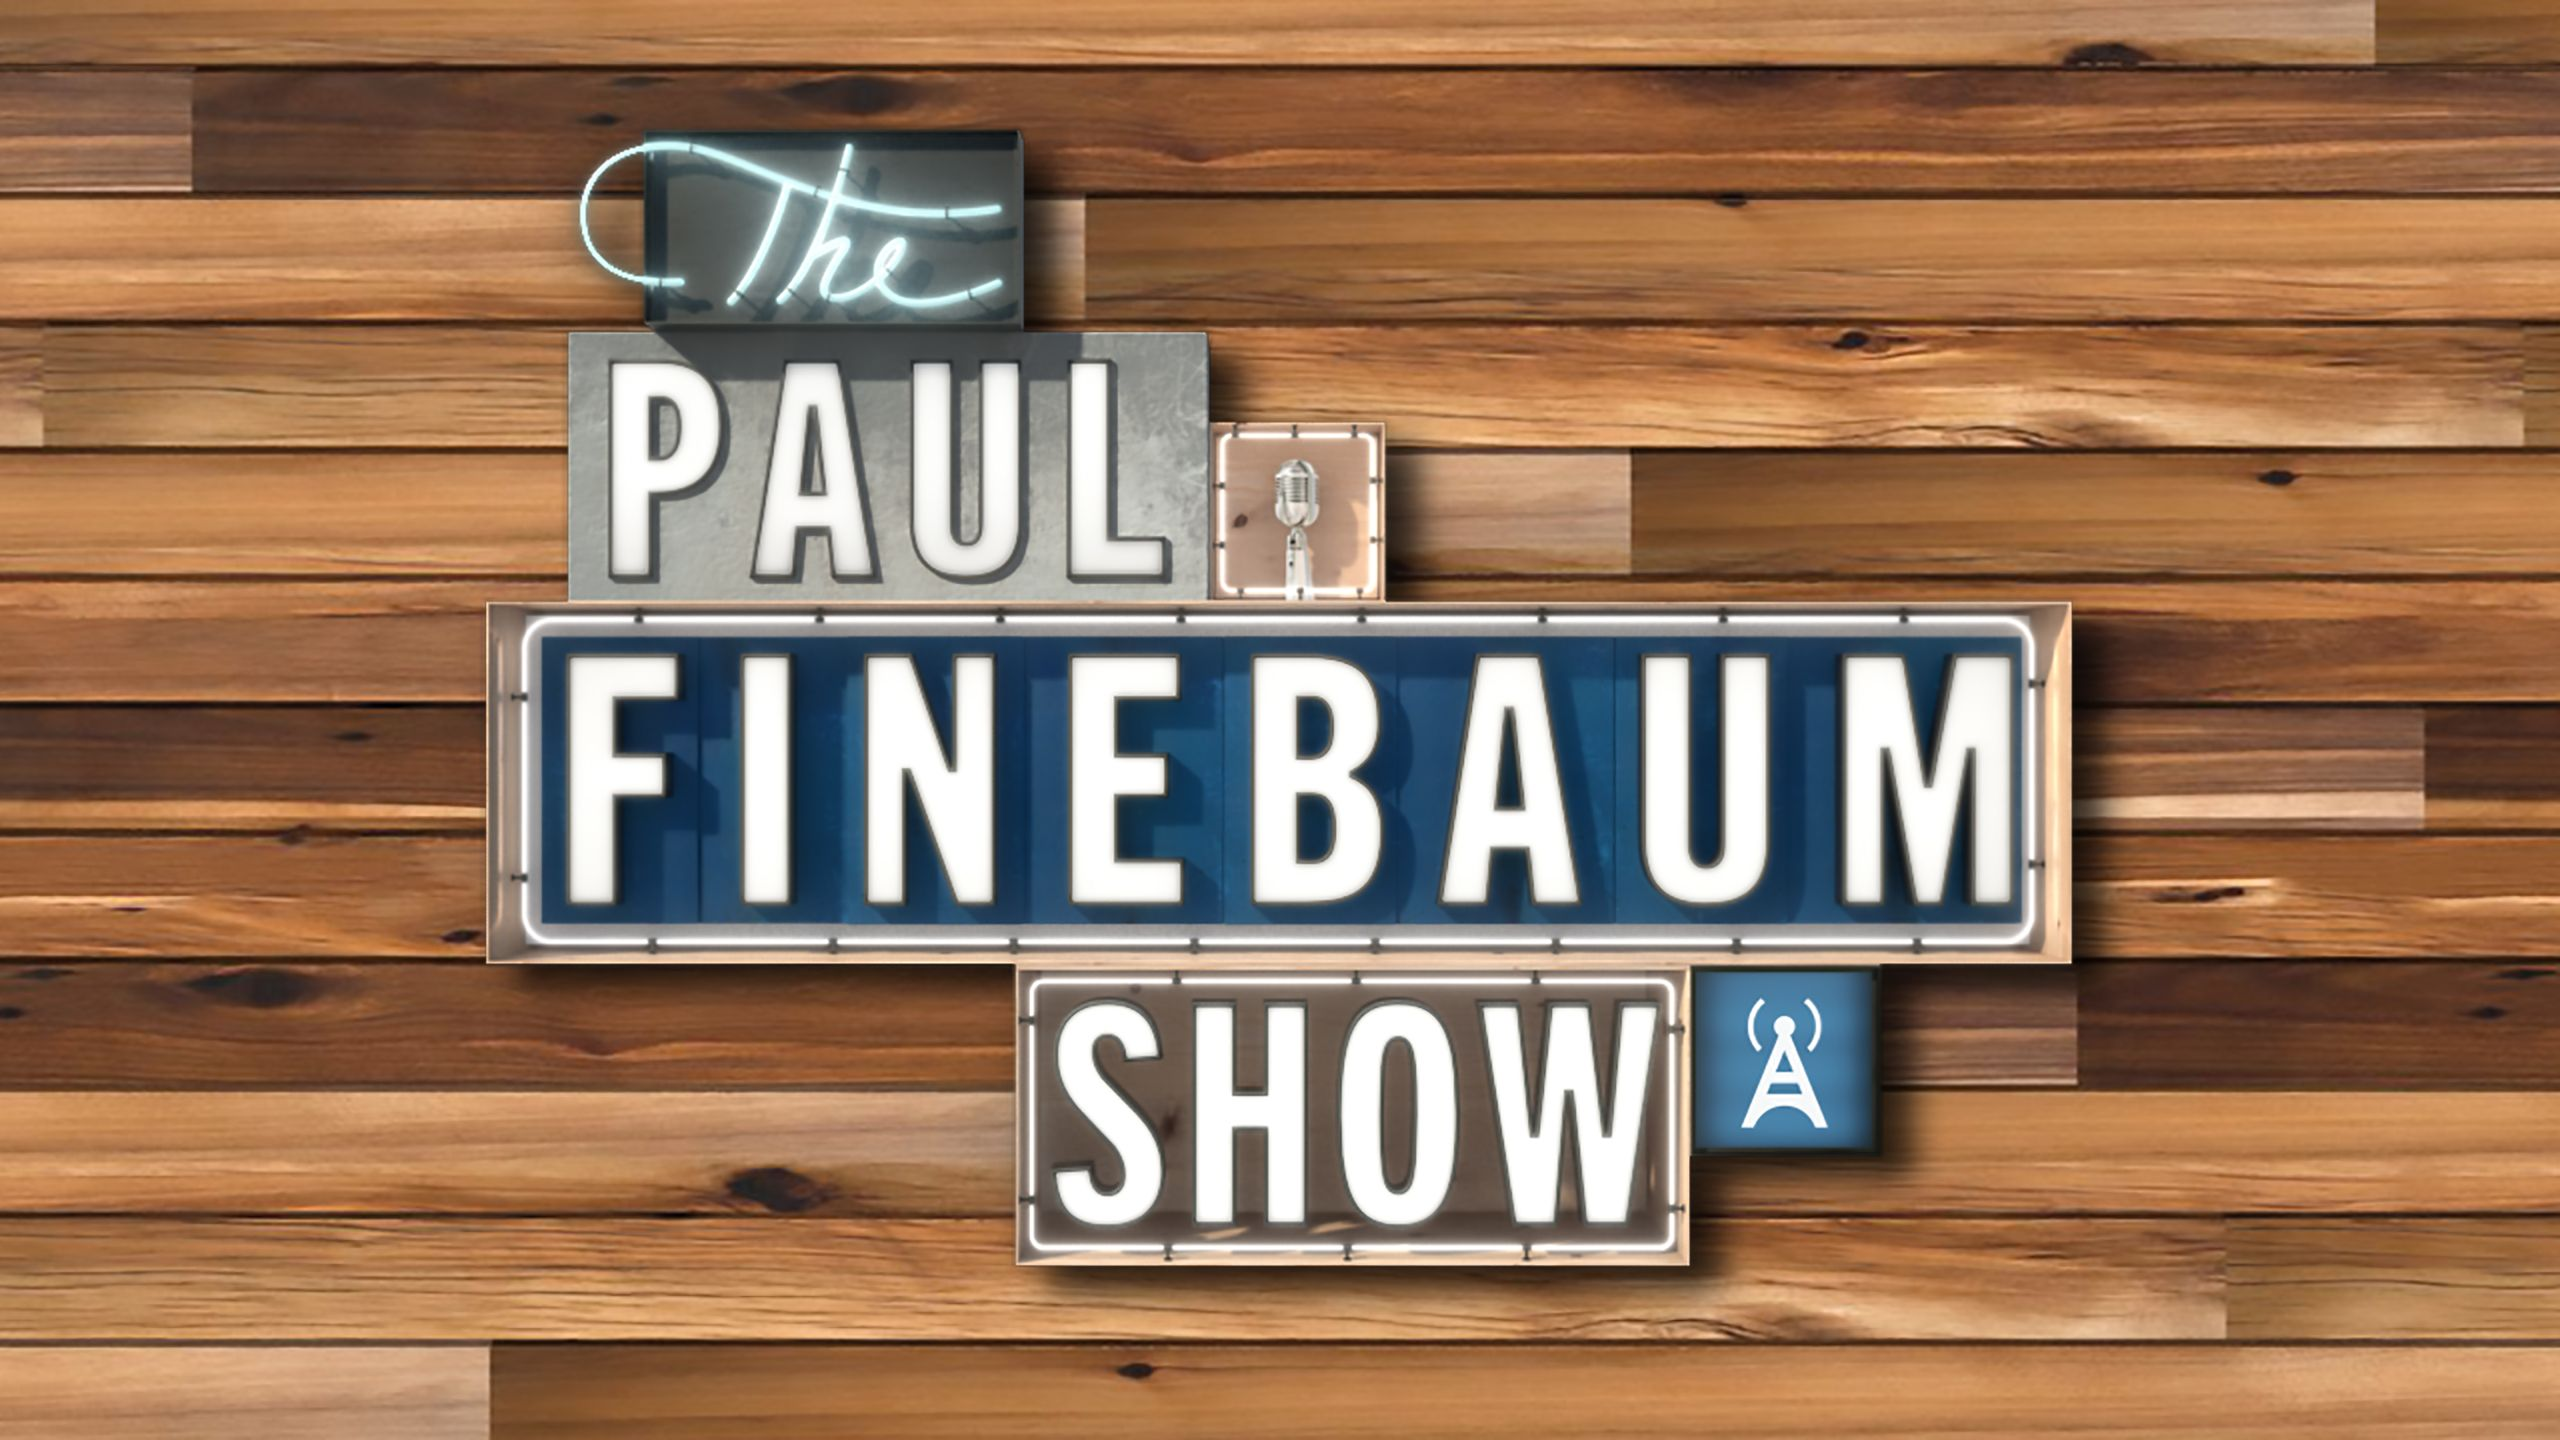 Mon, 2/19 - The Paul Finebaum Show